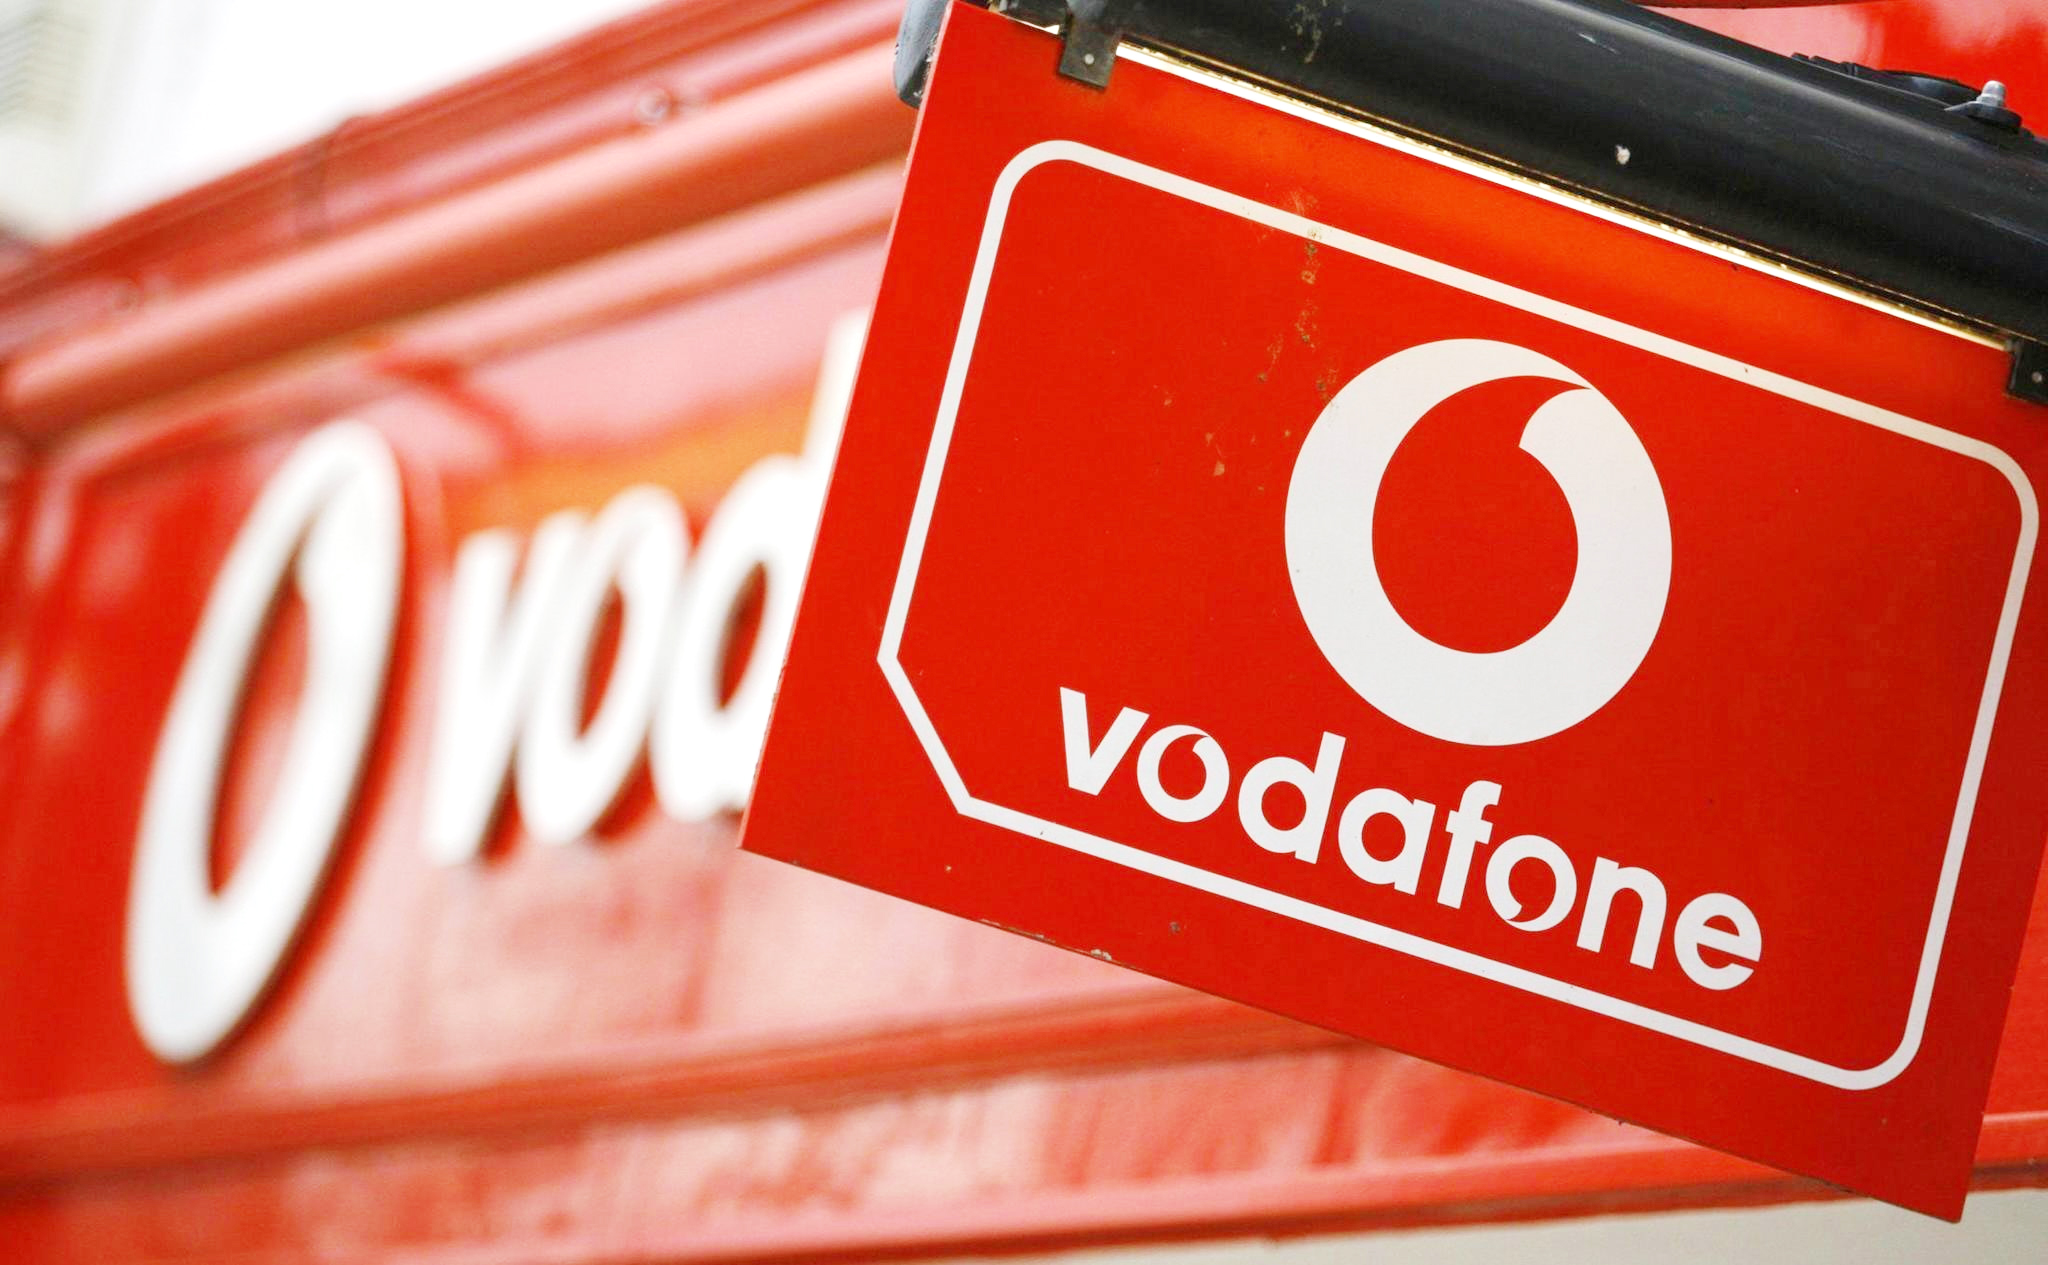 A Vodafone sign on May 30, 2006.